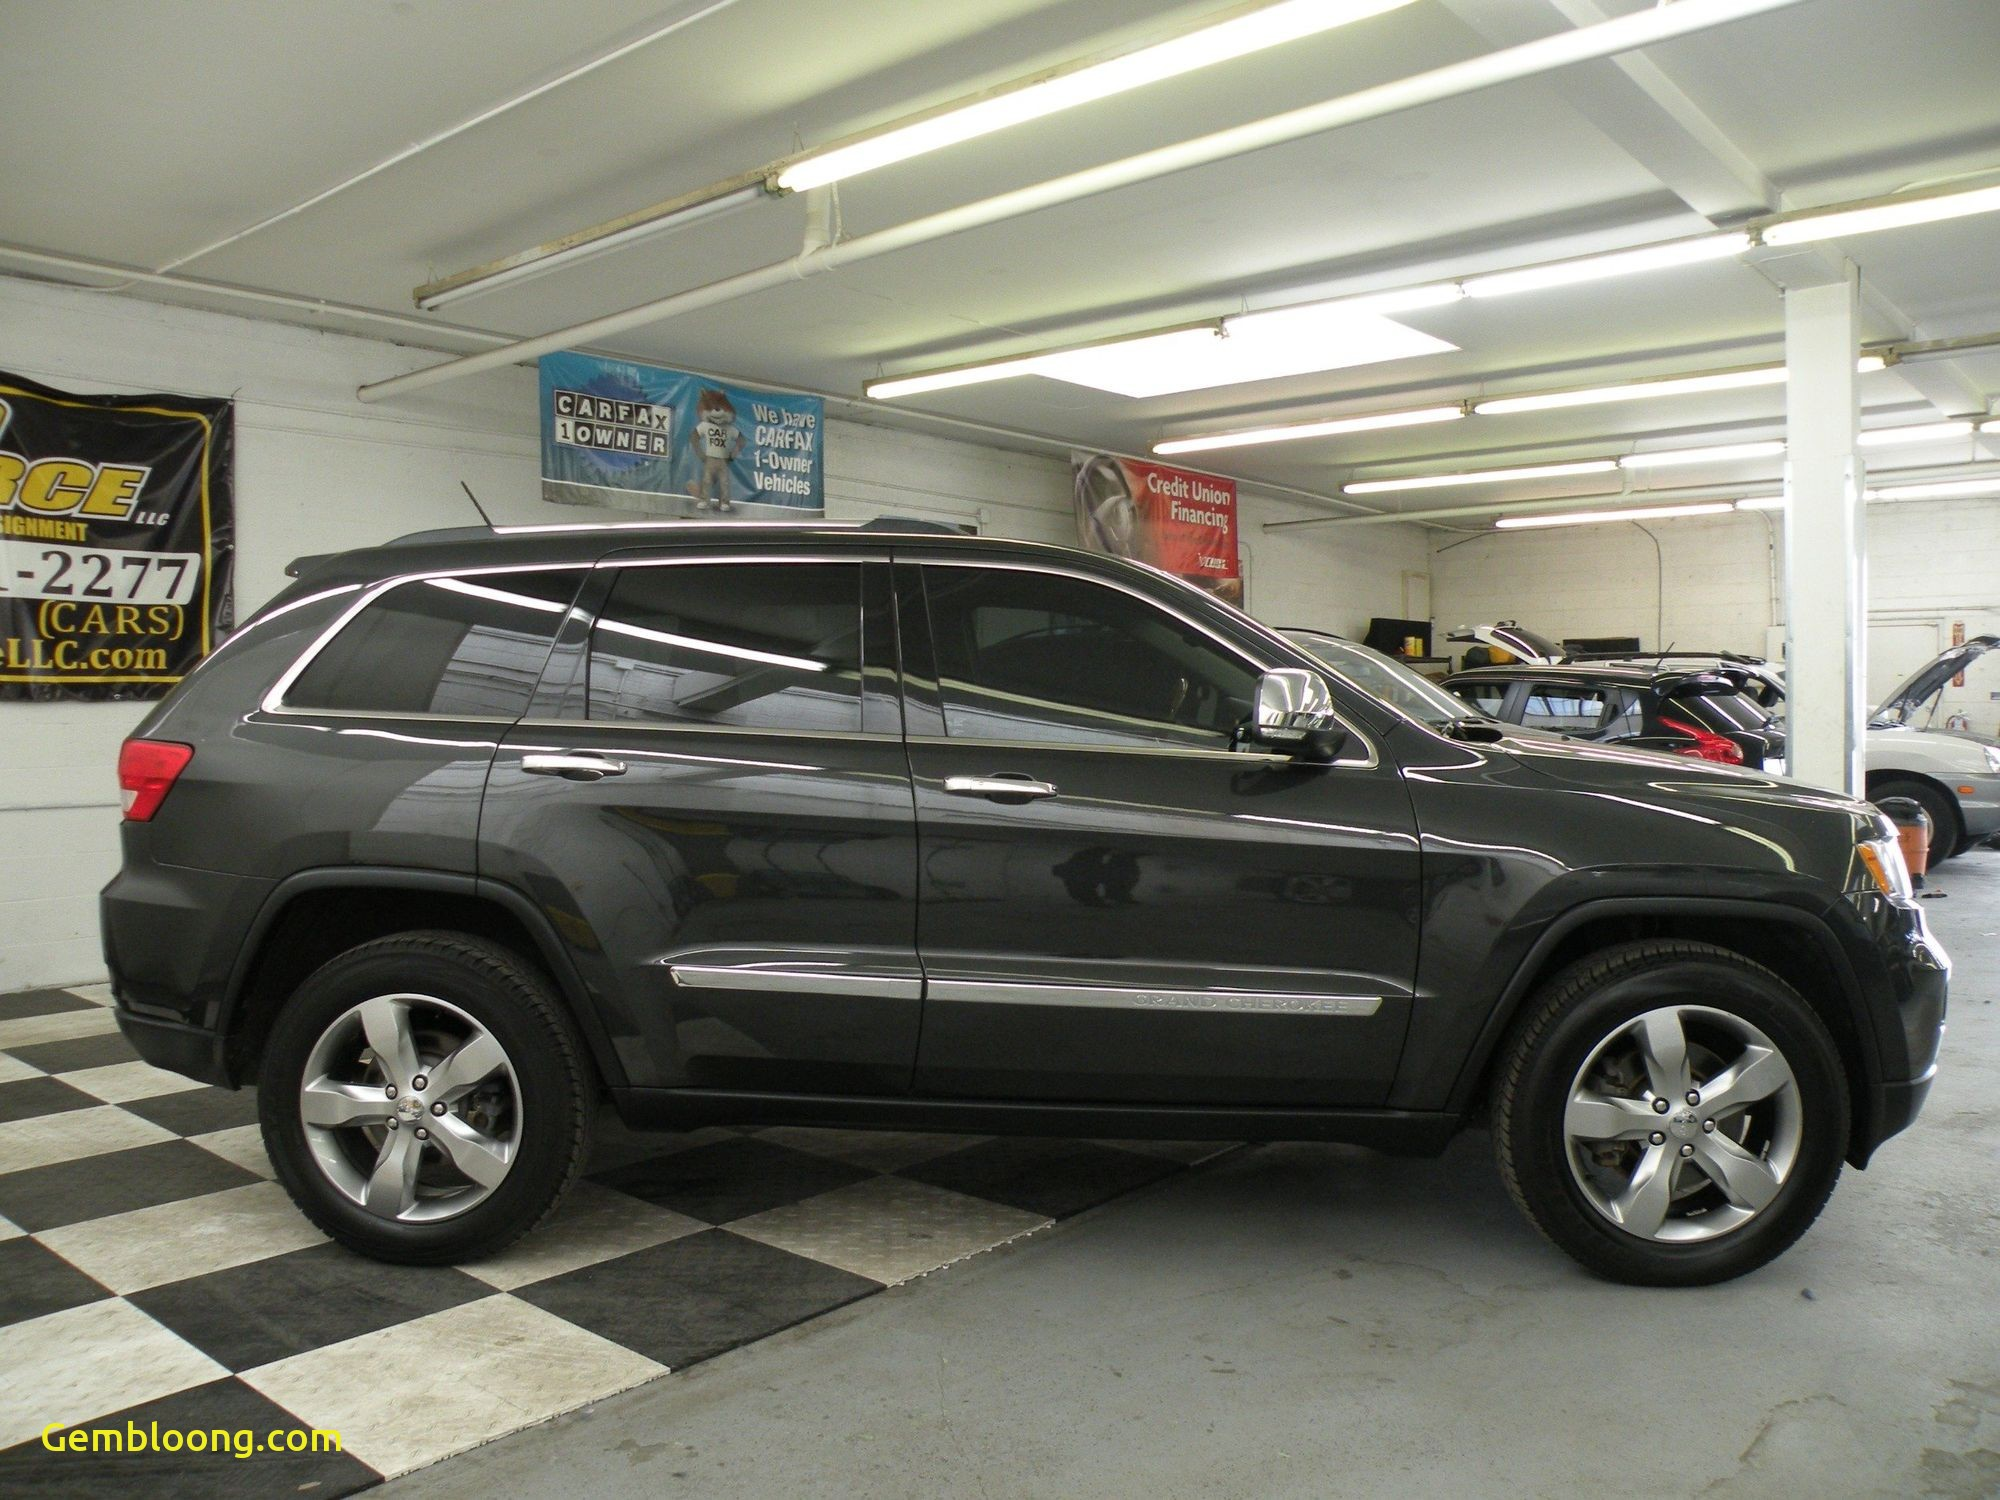 Who Owns Carfax Fresh 2011 Jeep Grand Cherokee Overland